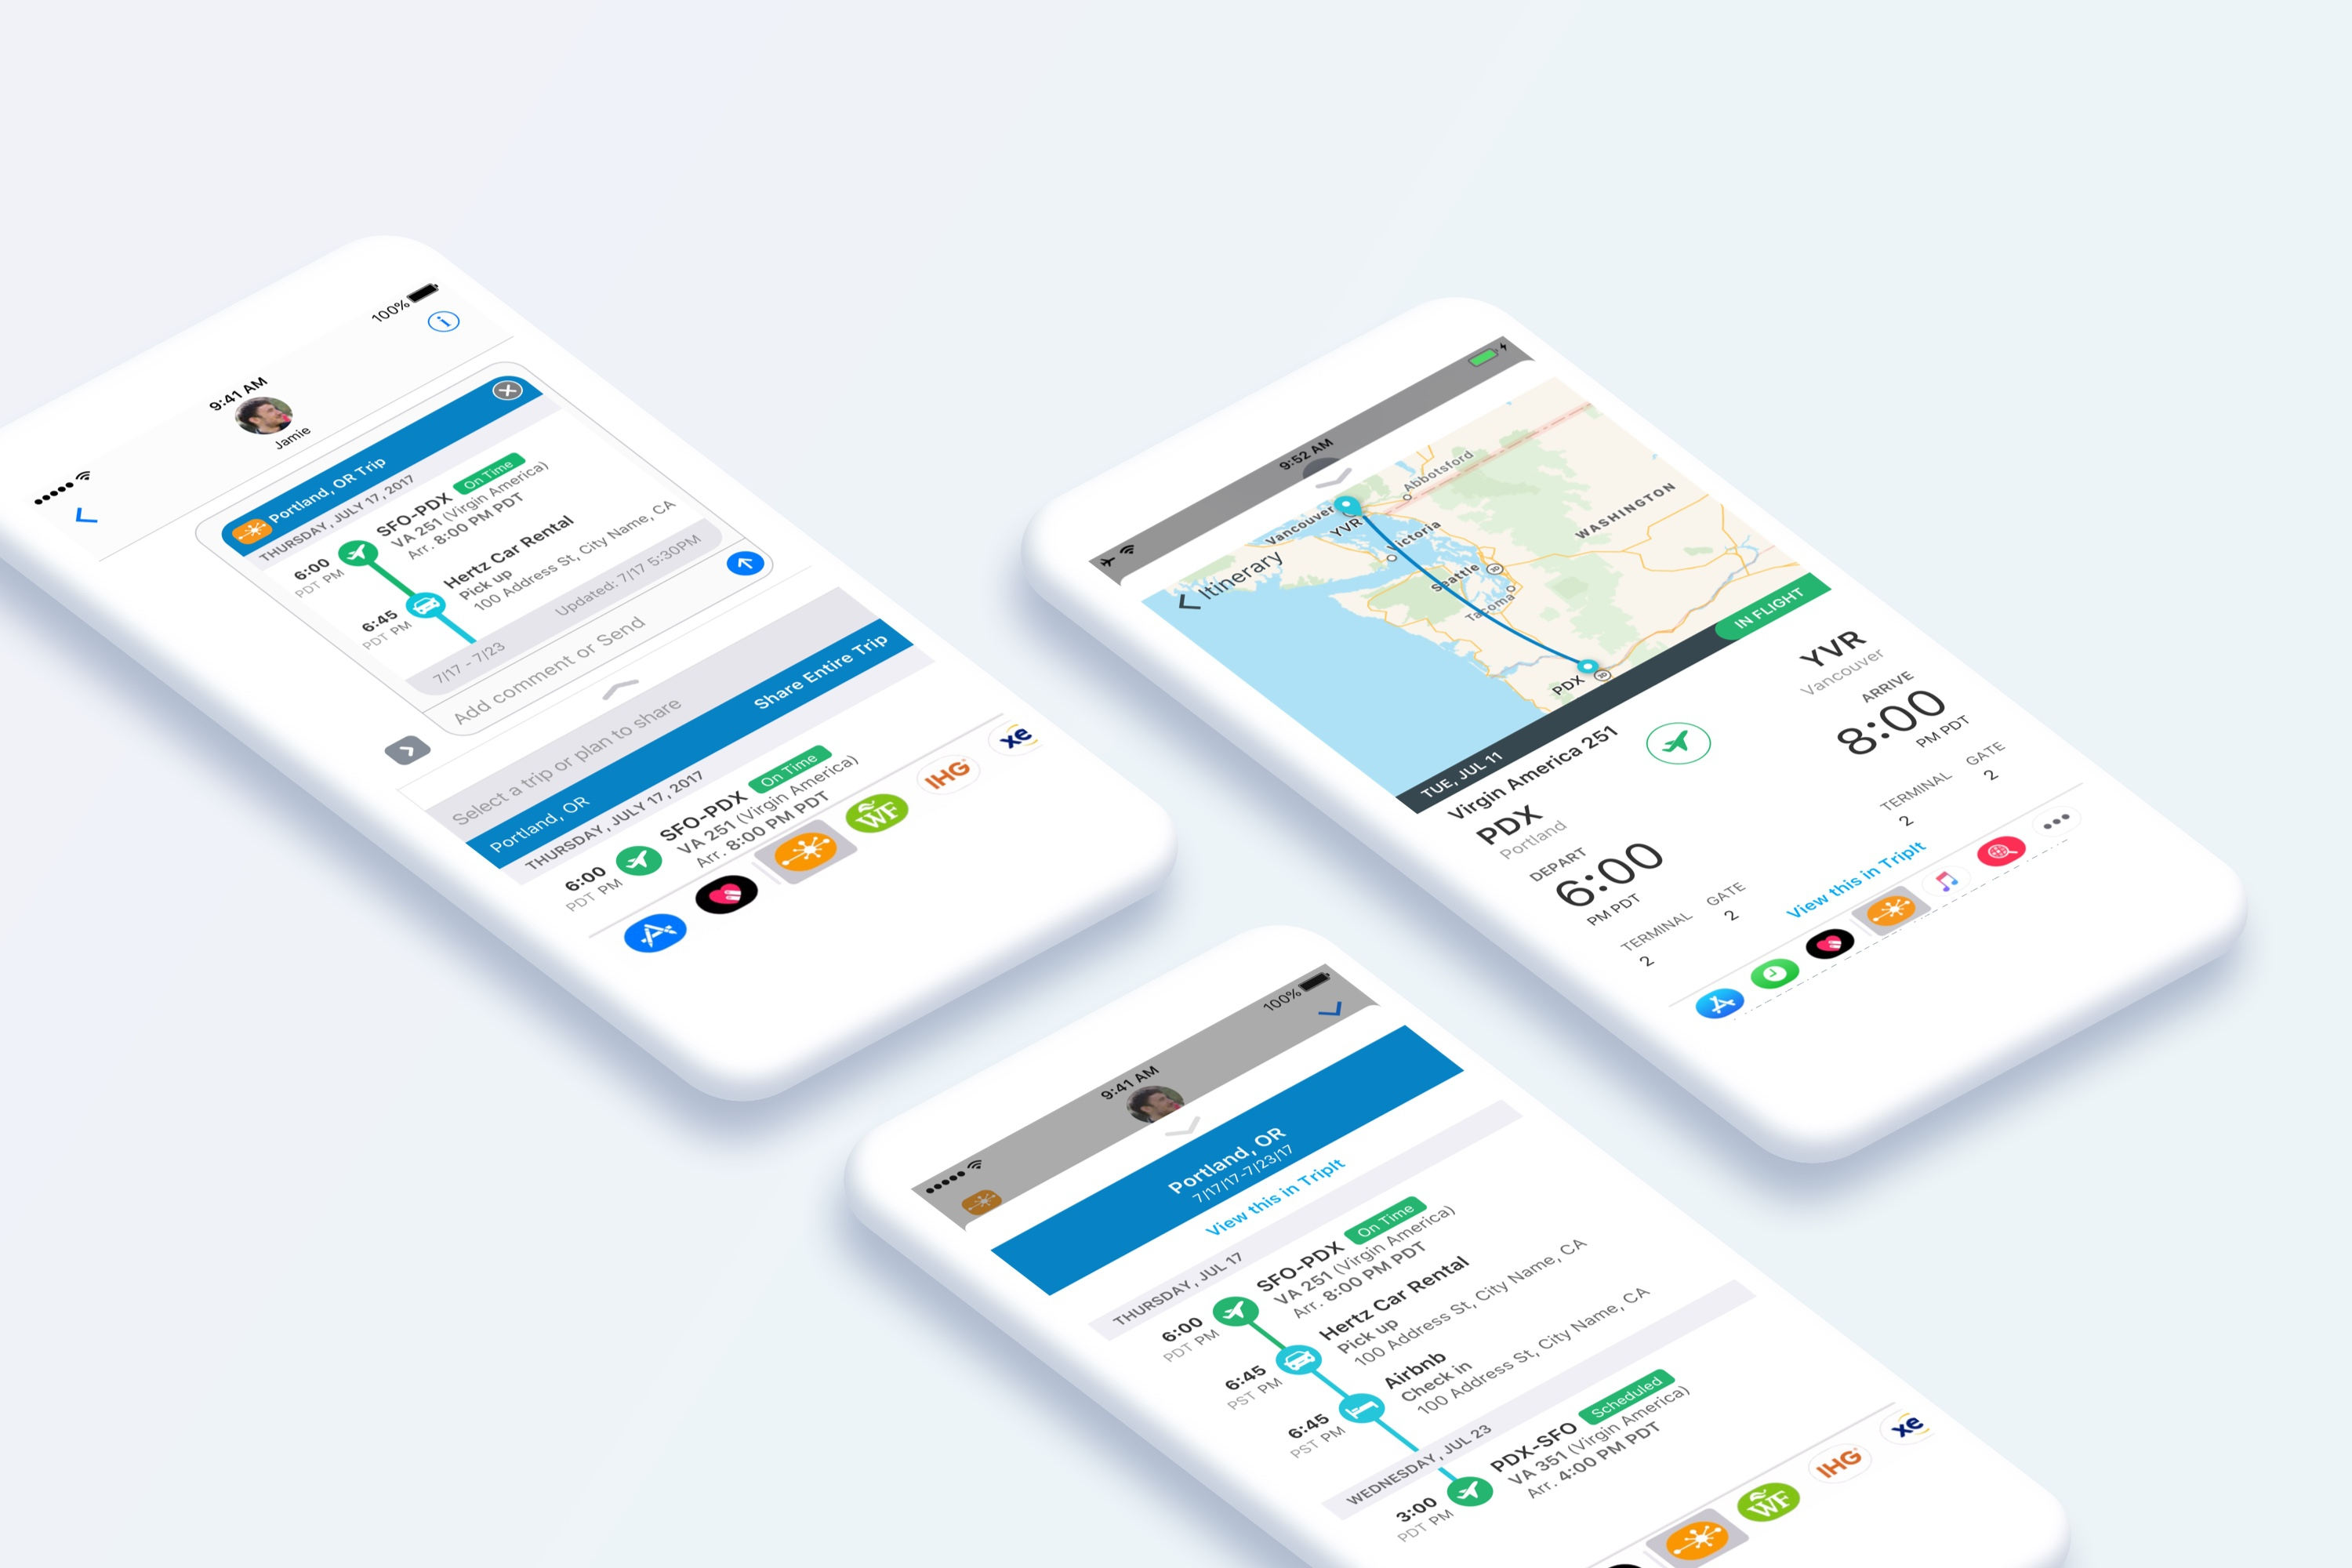 SALTZMAN: Awesome apps for holiday travel